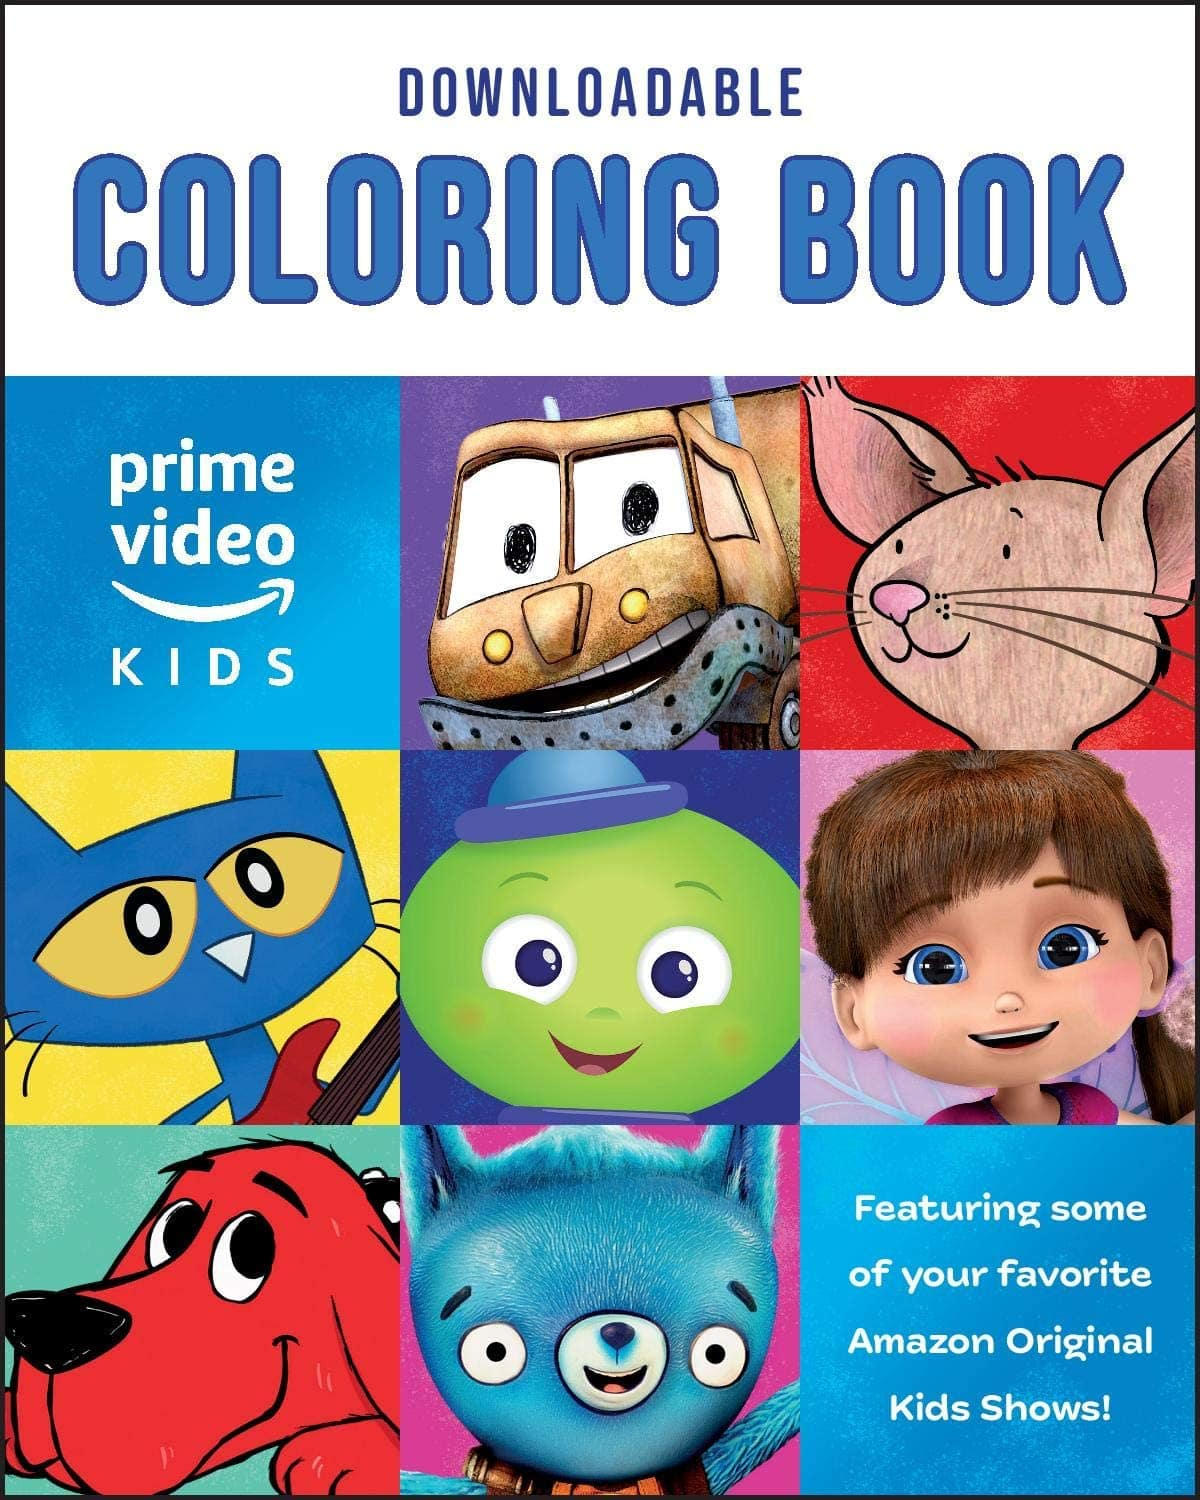 Amazon - FREE Amazon Original Kids Shows Downloadable Coloring Book [PC/Mac Download]